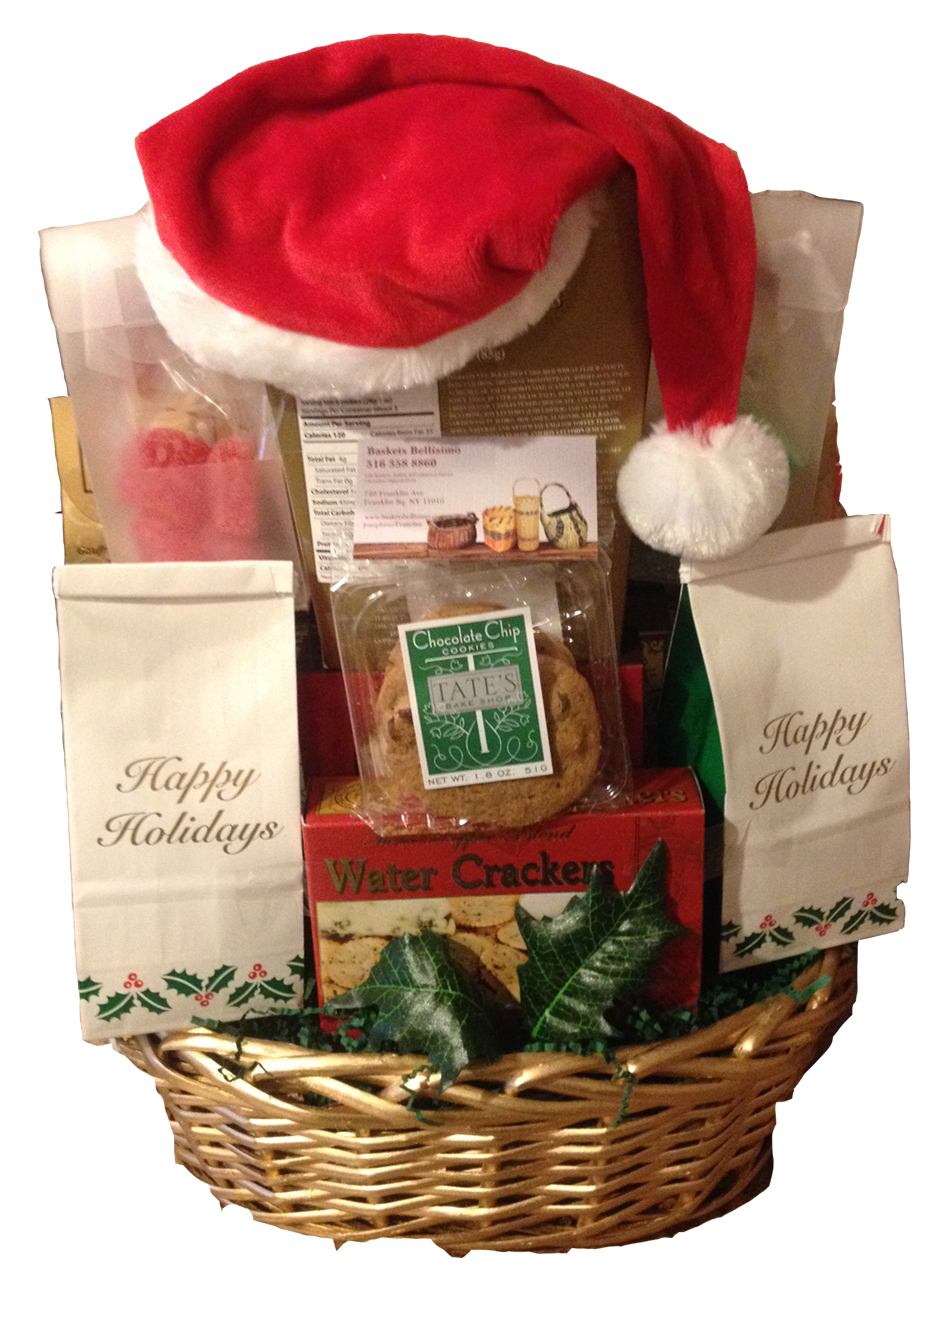 HolidayBasket_Transparent_001.png